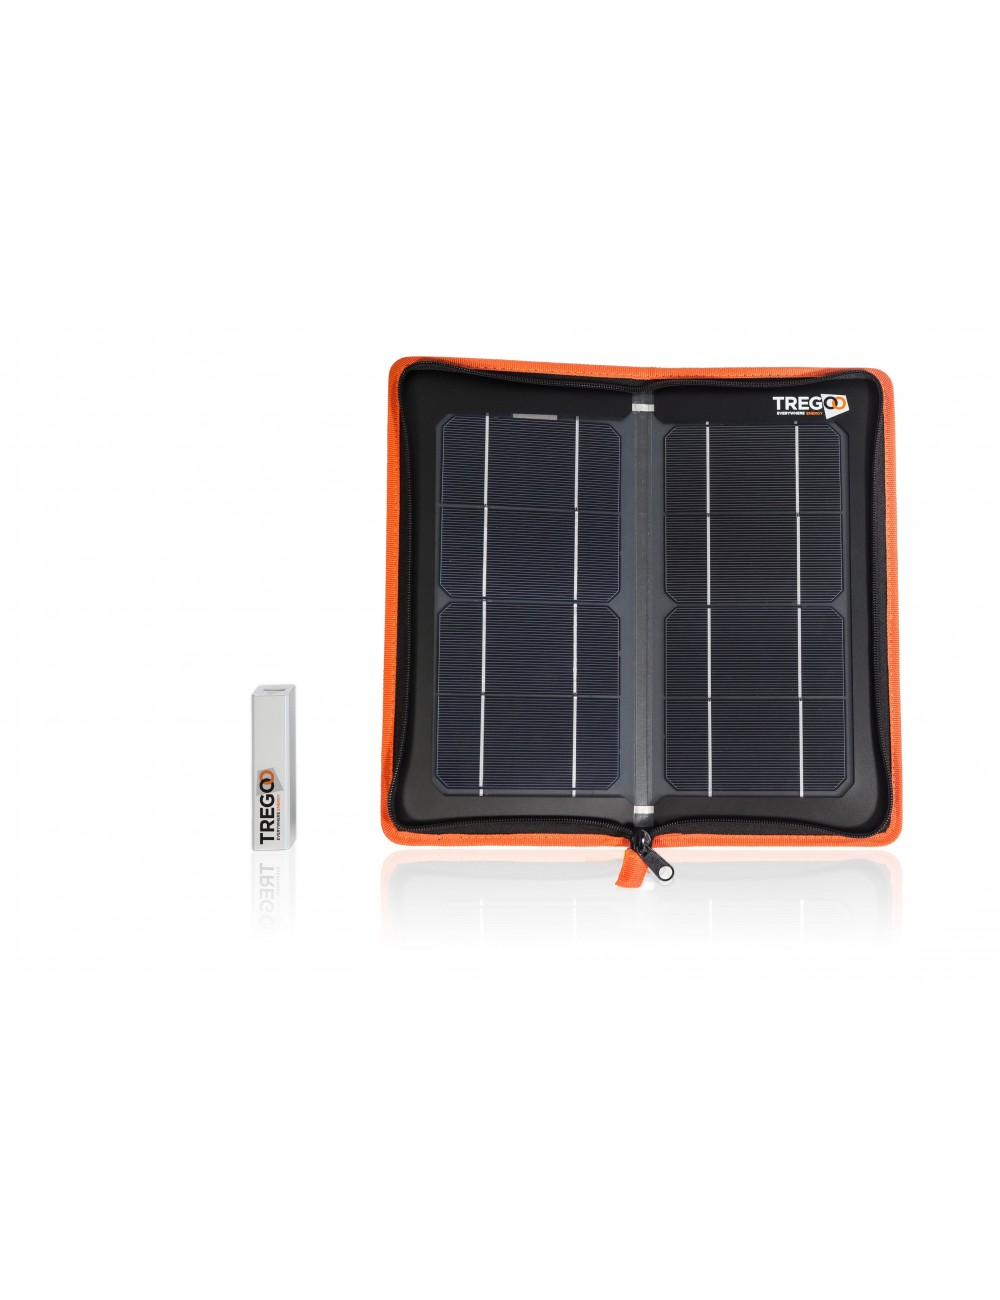 TREGOO 10-10 EXTREME Solar Power Station Kit con Pannello Solare e Power Pack